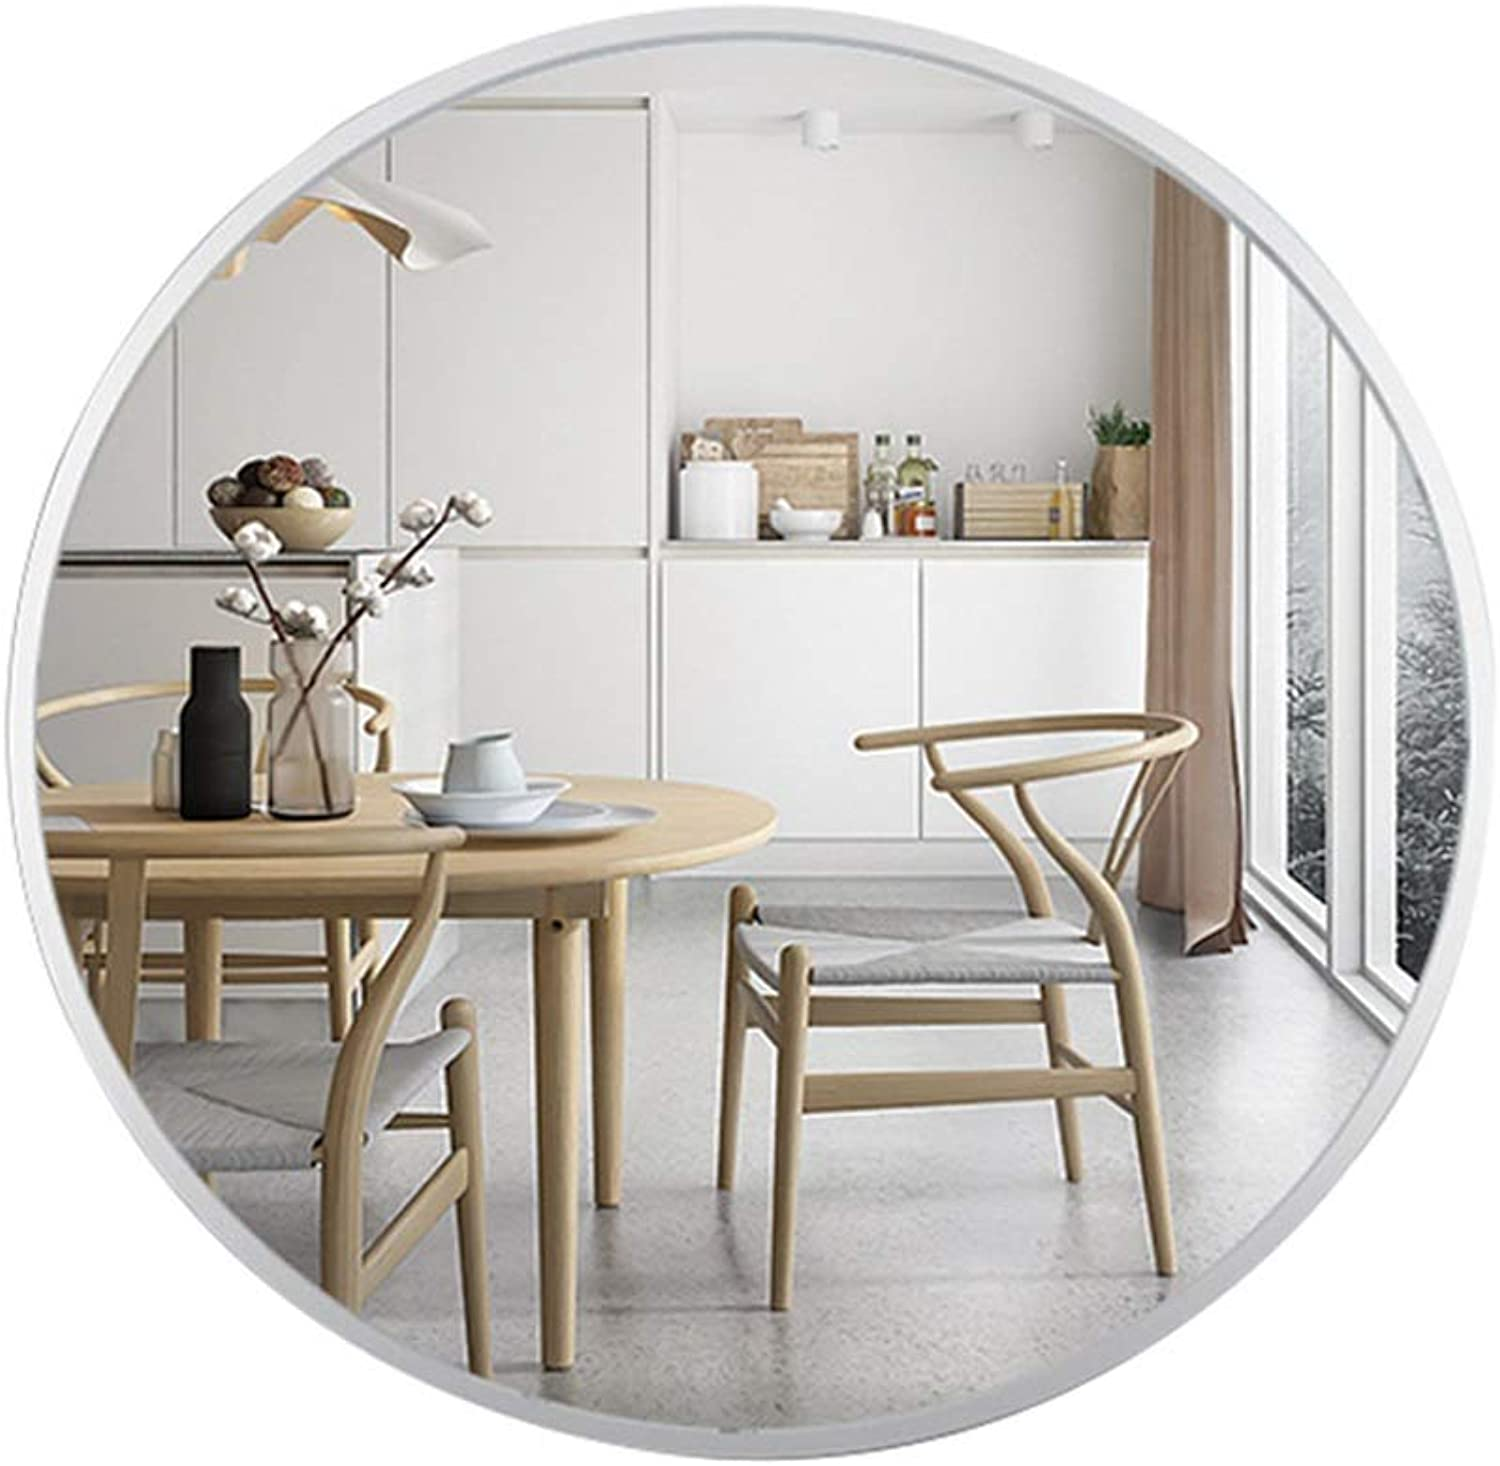 Hallway Large Round Hanging Wall Mounted Mirror Modern Simple Decorative High Definition Shaving Mirror Makeup Shaving Iron Mirrors Multiple Sizes